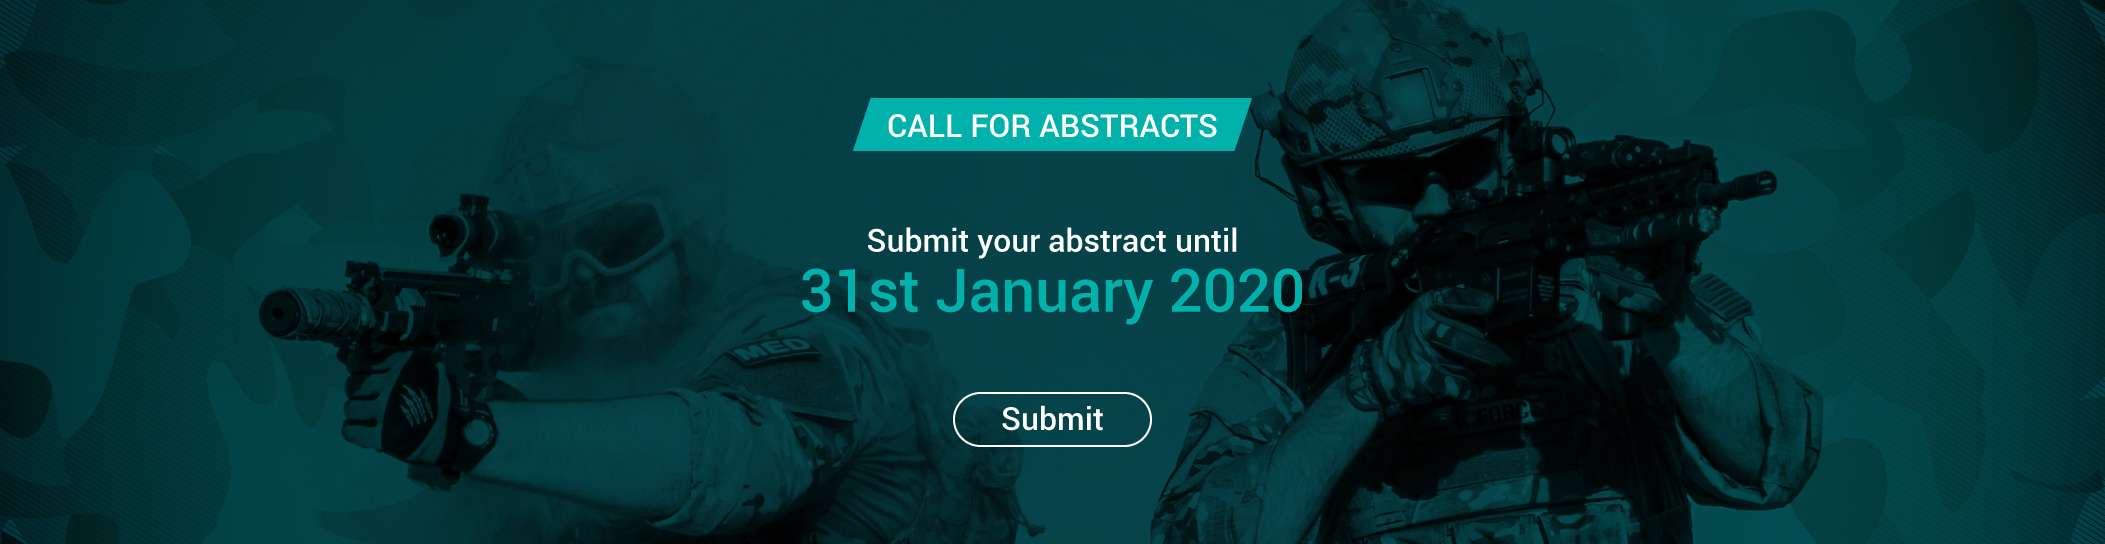 Img - Call for Abstracts